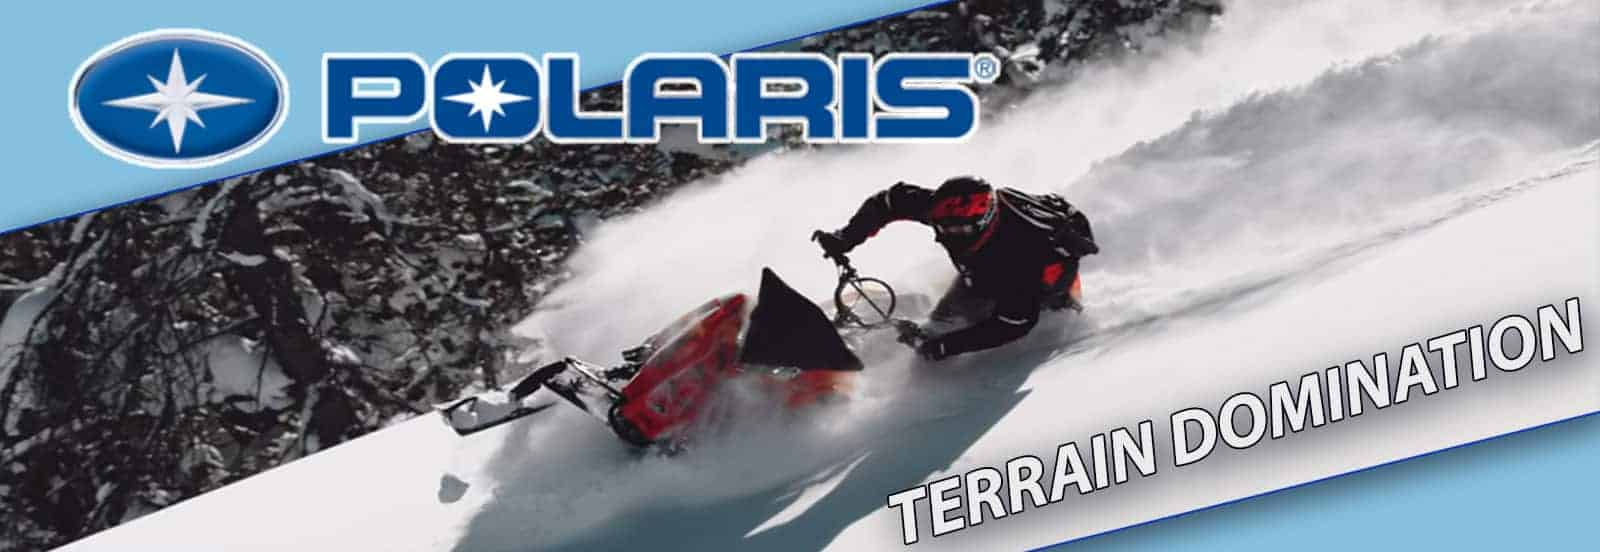 polaris snowmobile hero